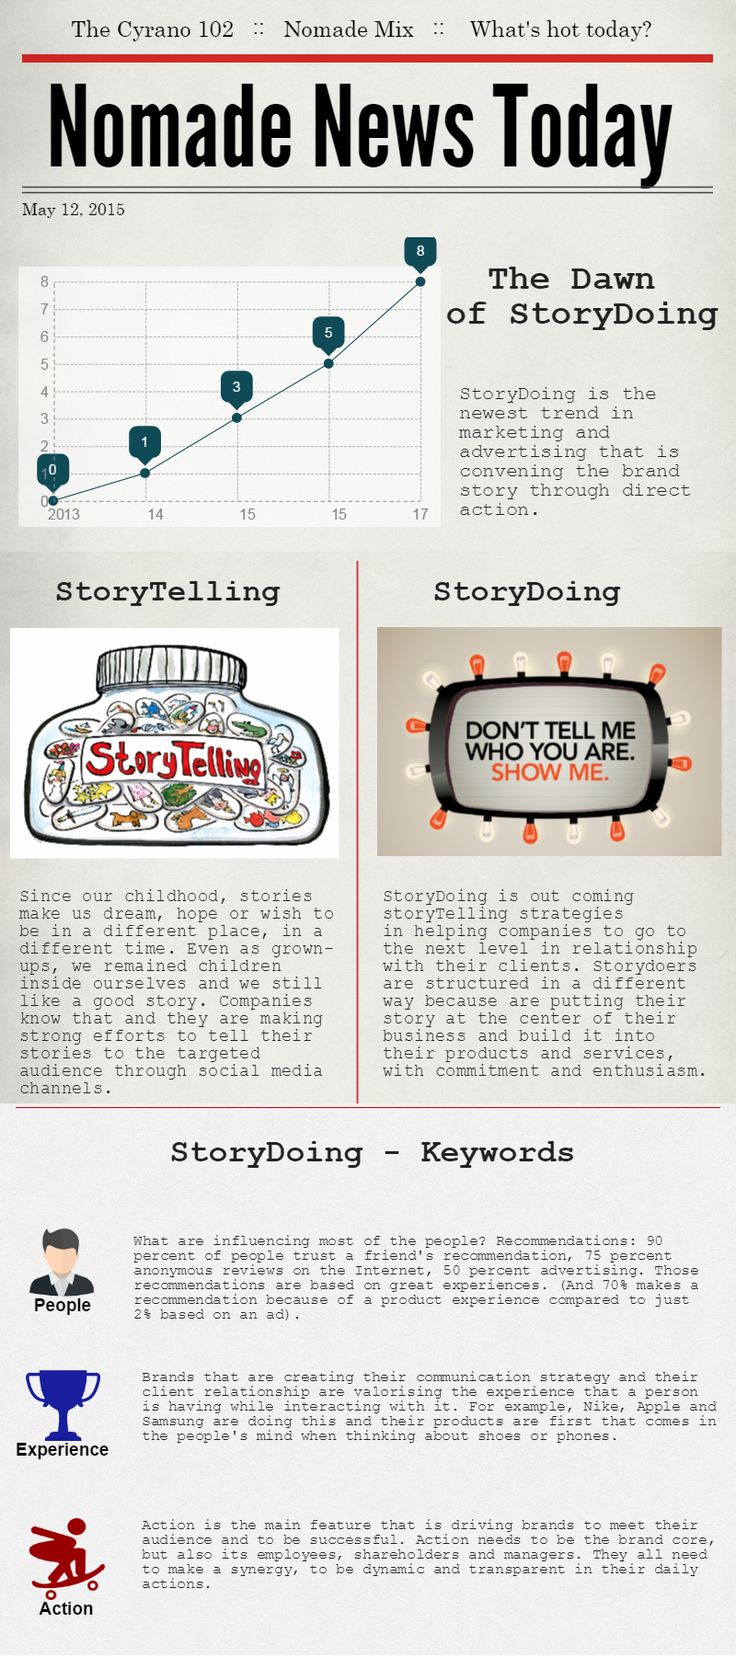 Breaking news! Are you a storydoer or a storyteller? Learn more on www.nomade.ro.  ‪#‎storytelling‬ ‪#‎storydoing‬